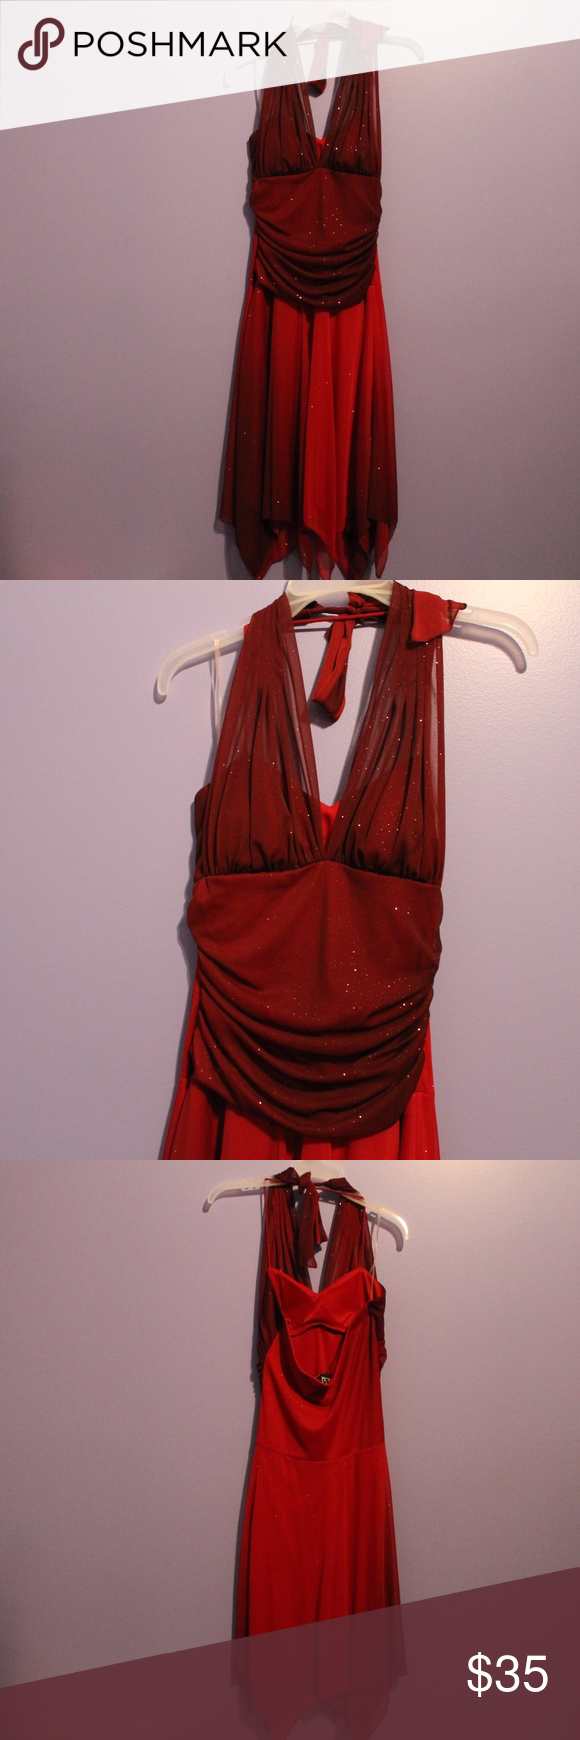 Maroon and red sparkling dress this dress has never been worn it is